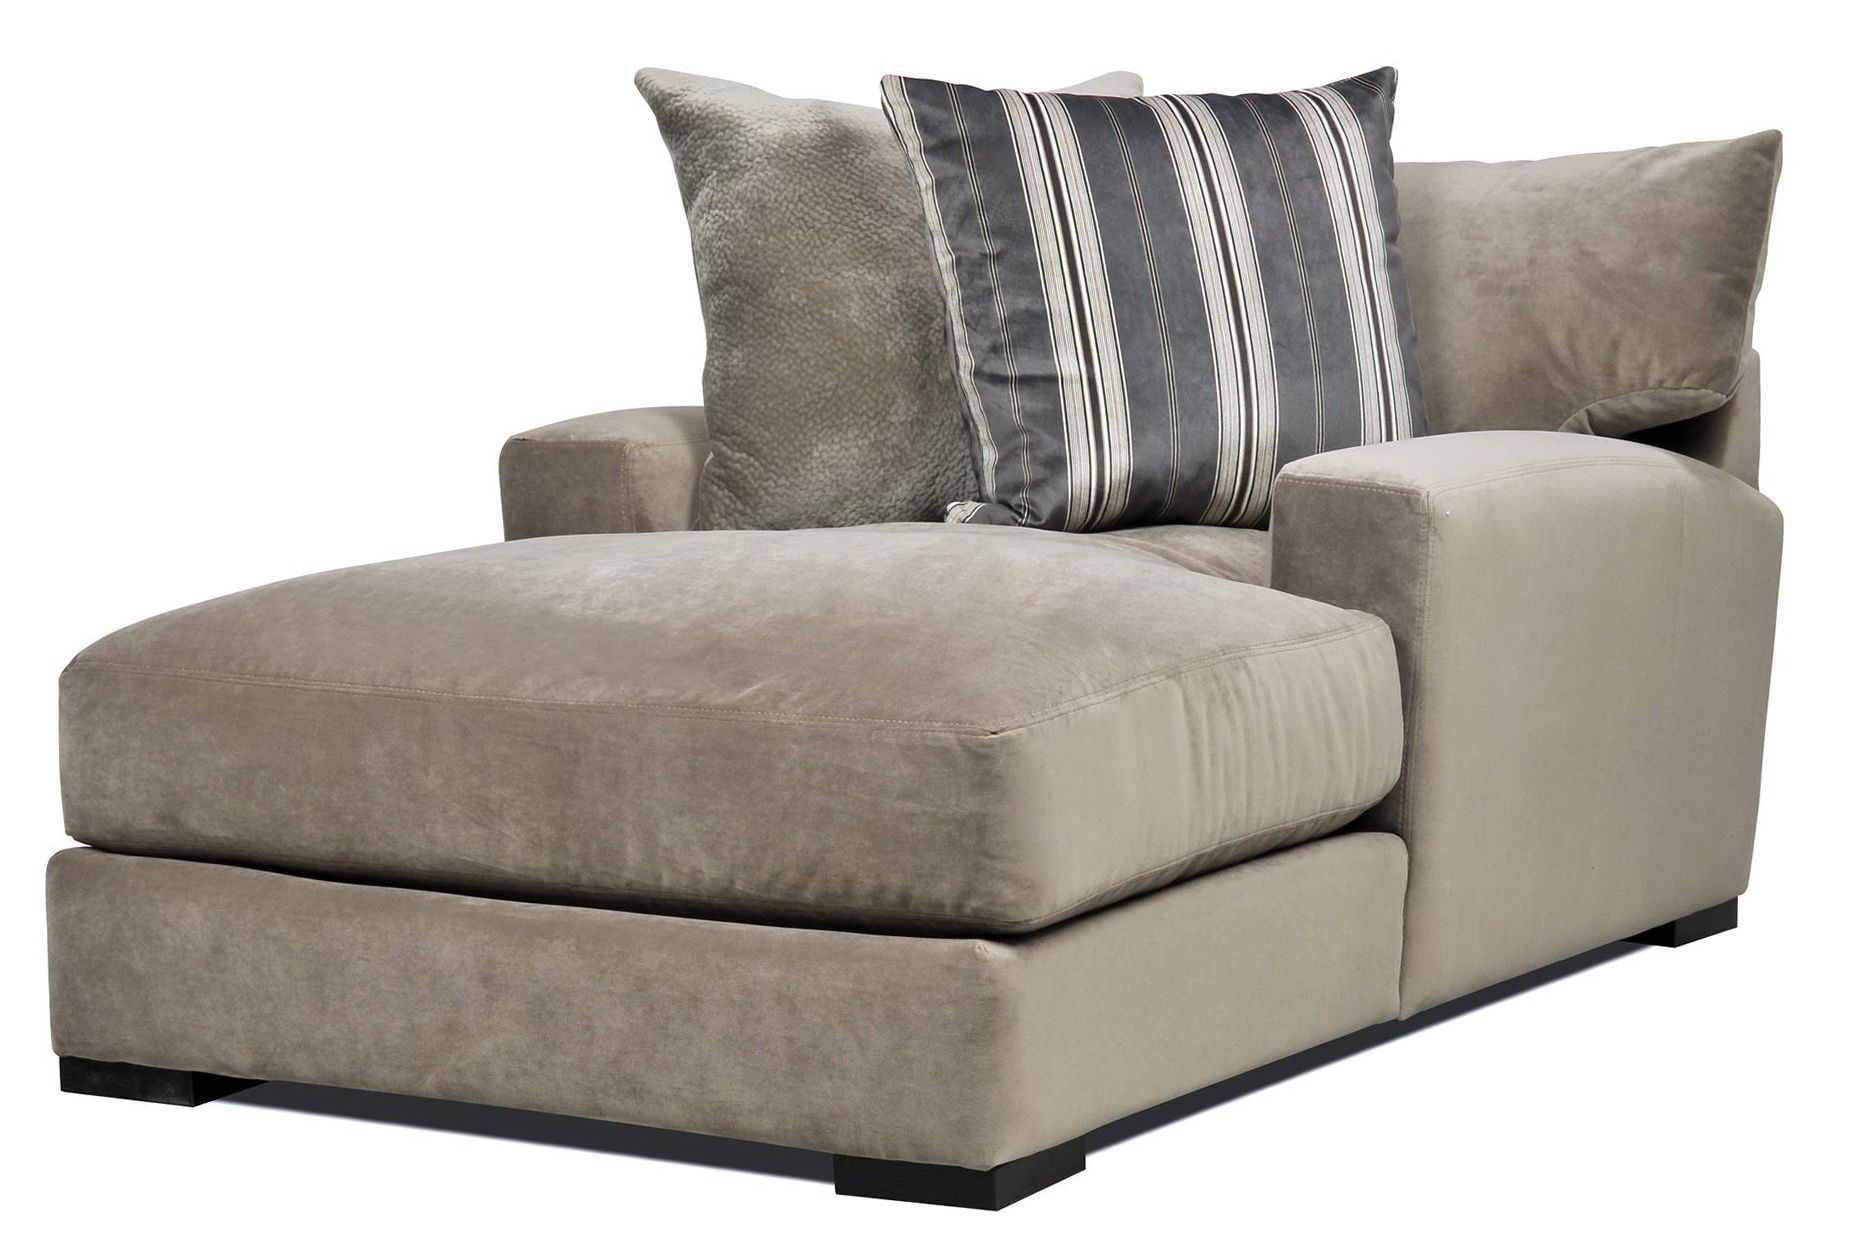 Double wide chaise lounge indoor with 2 cushions chaise for Chaise longue double exterieur